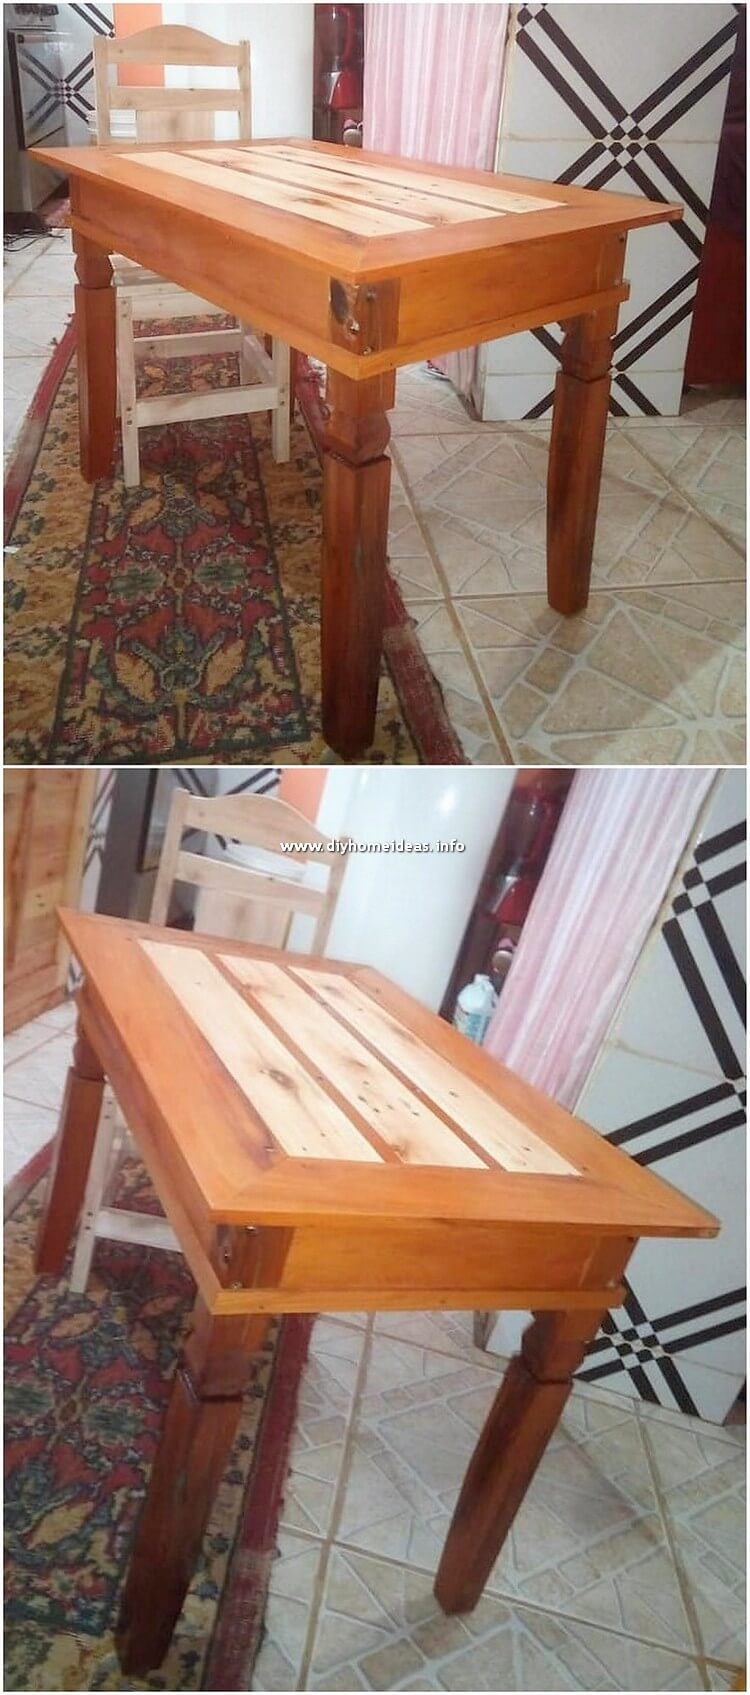 Pallet Table and Chair